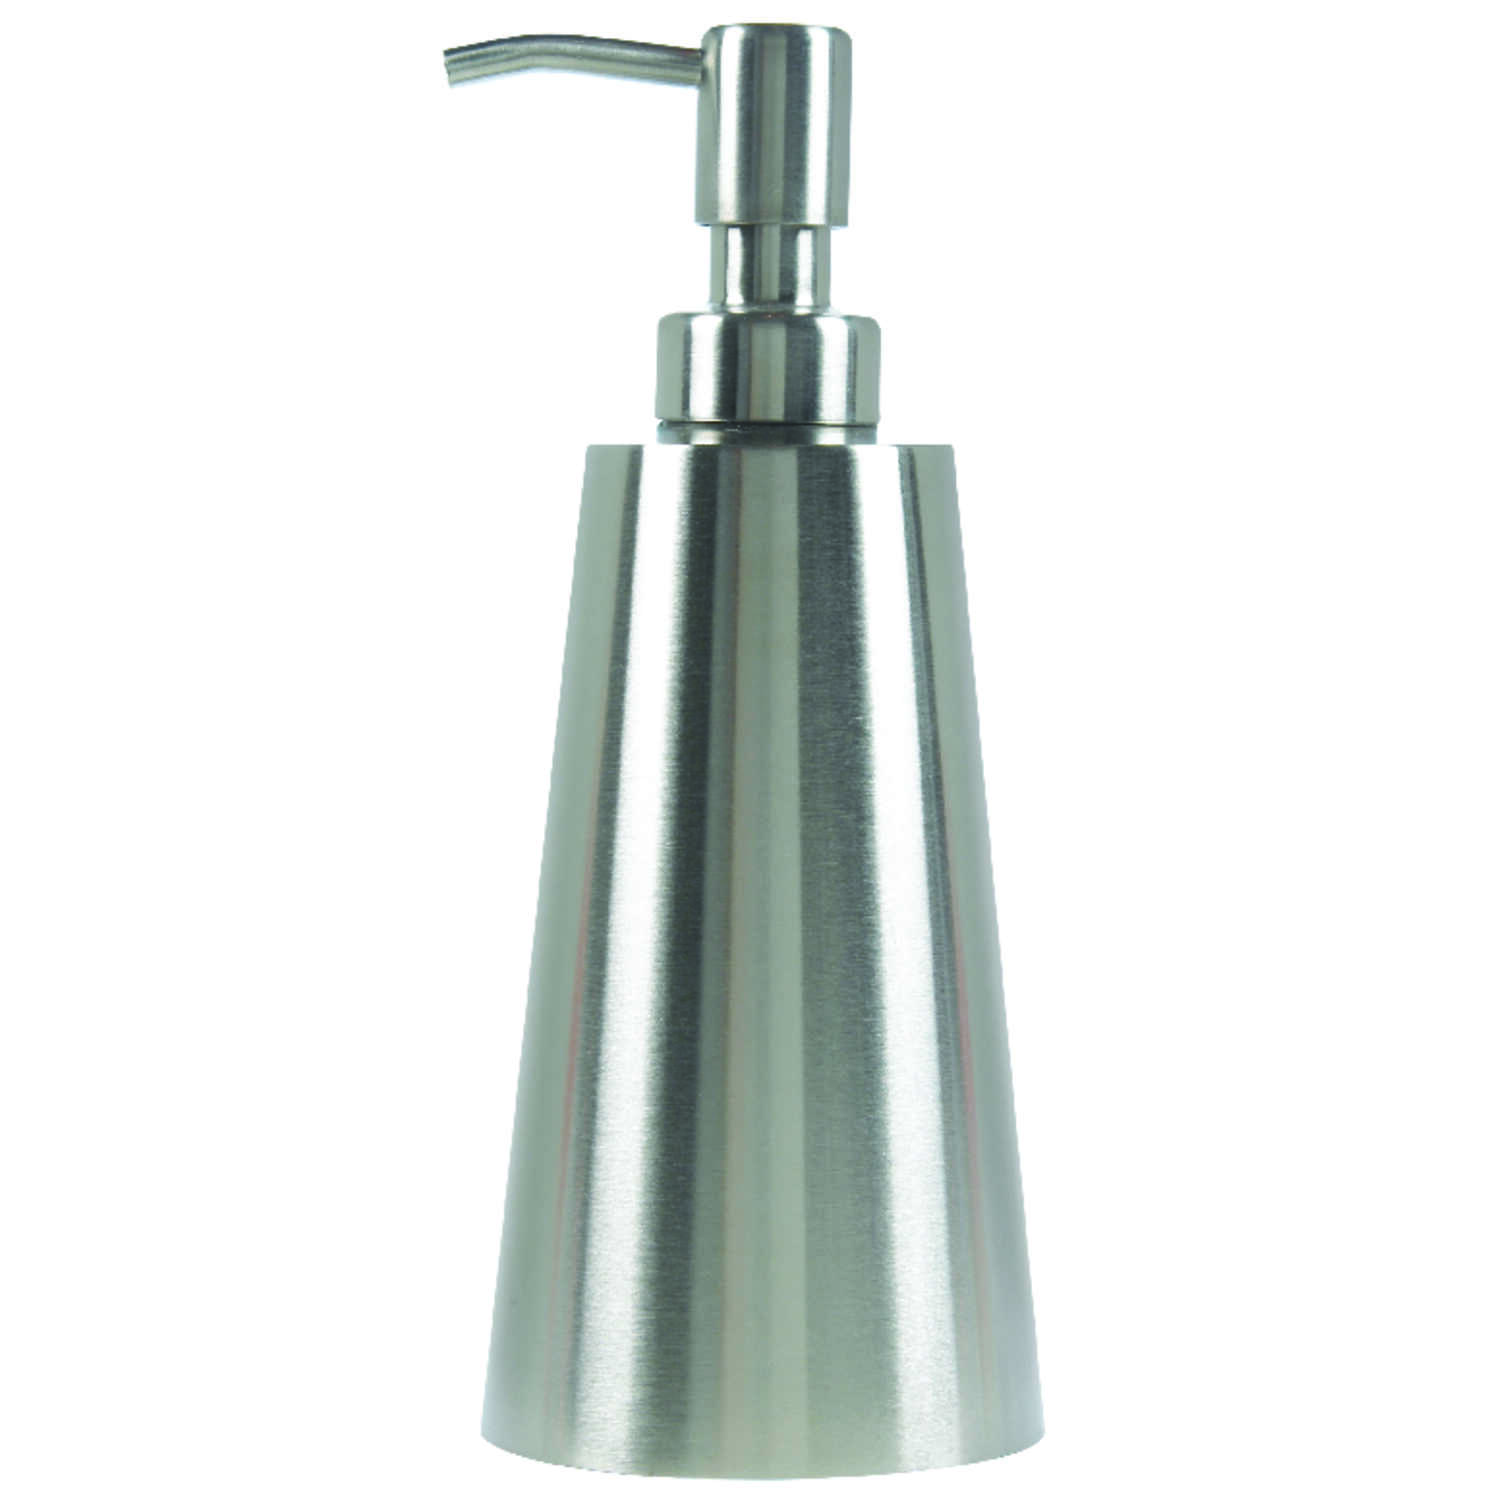 InterDesign  Nogu  Soap Dispenser  7.8 in. H x 3.3 in. W x 3.3 in. L Stainless Steel  Silver  Stainl